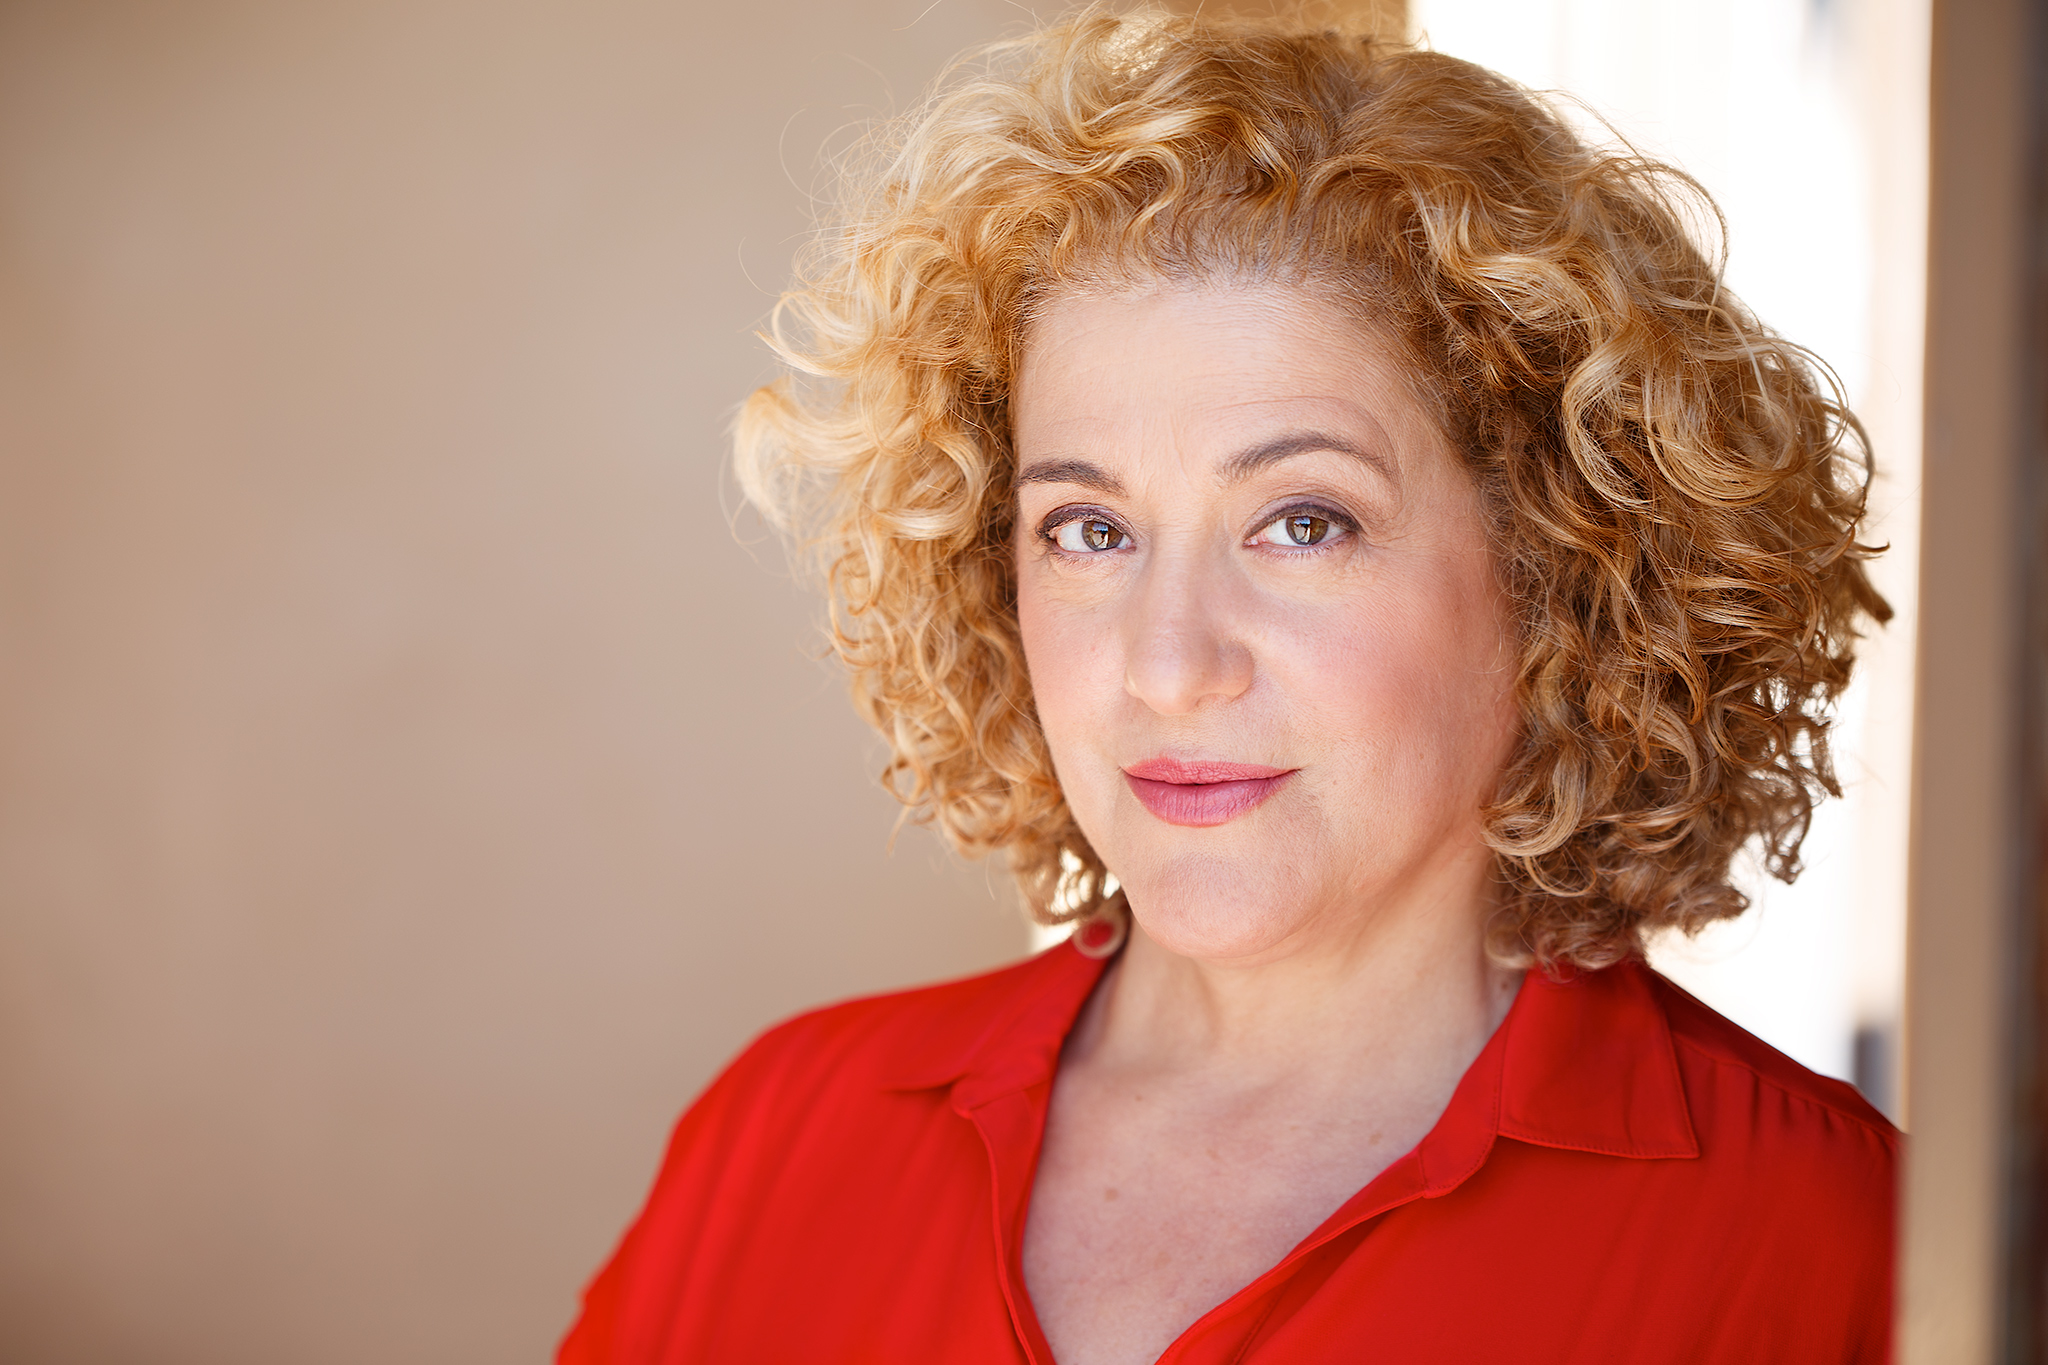 MARY TESTA   Two Time TONY Award®Nominee, Drama Desk Award Winner  Broadway/Stage: Queen of the Mist, See What I Wanna See,  Guys and Dolls, Xanadu,Marie Christine, 42nd Street...  Film/TV: The Marvelous Mrs. Maisel, The Mother, Big Stone Gap, The Bounty Hunter,...